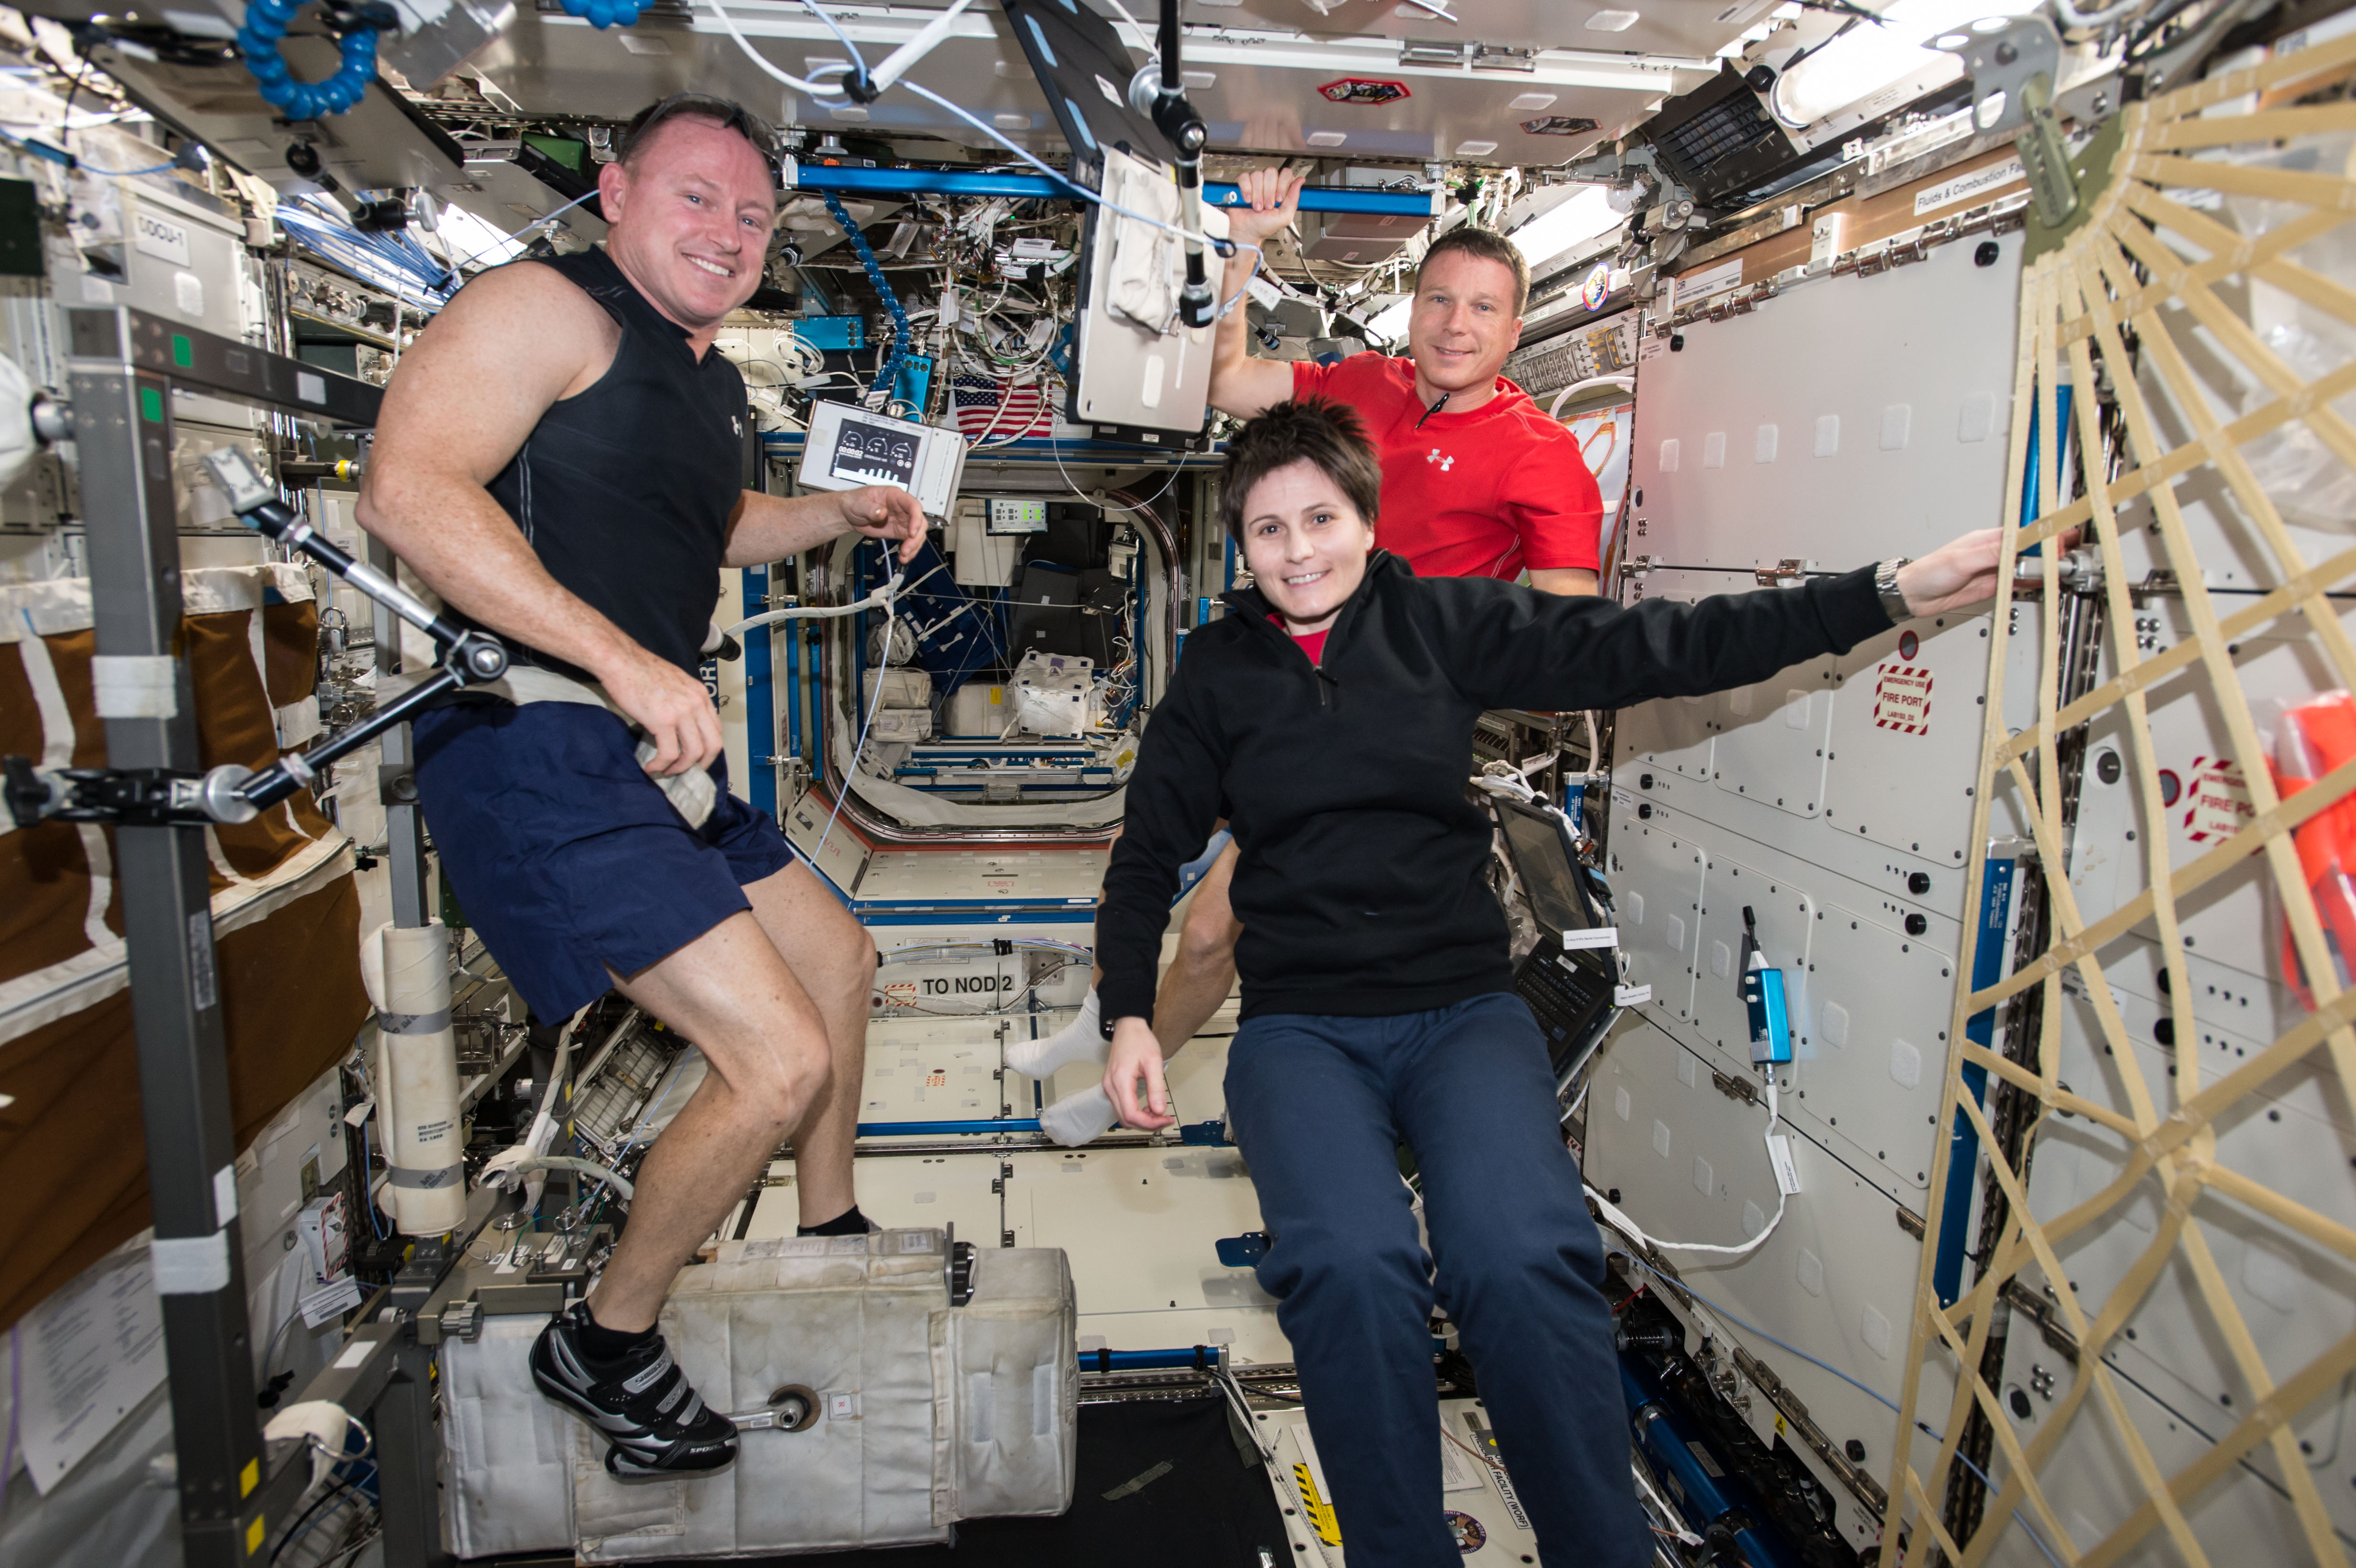 astronaut crews of the international space station role - photo #20